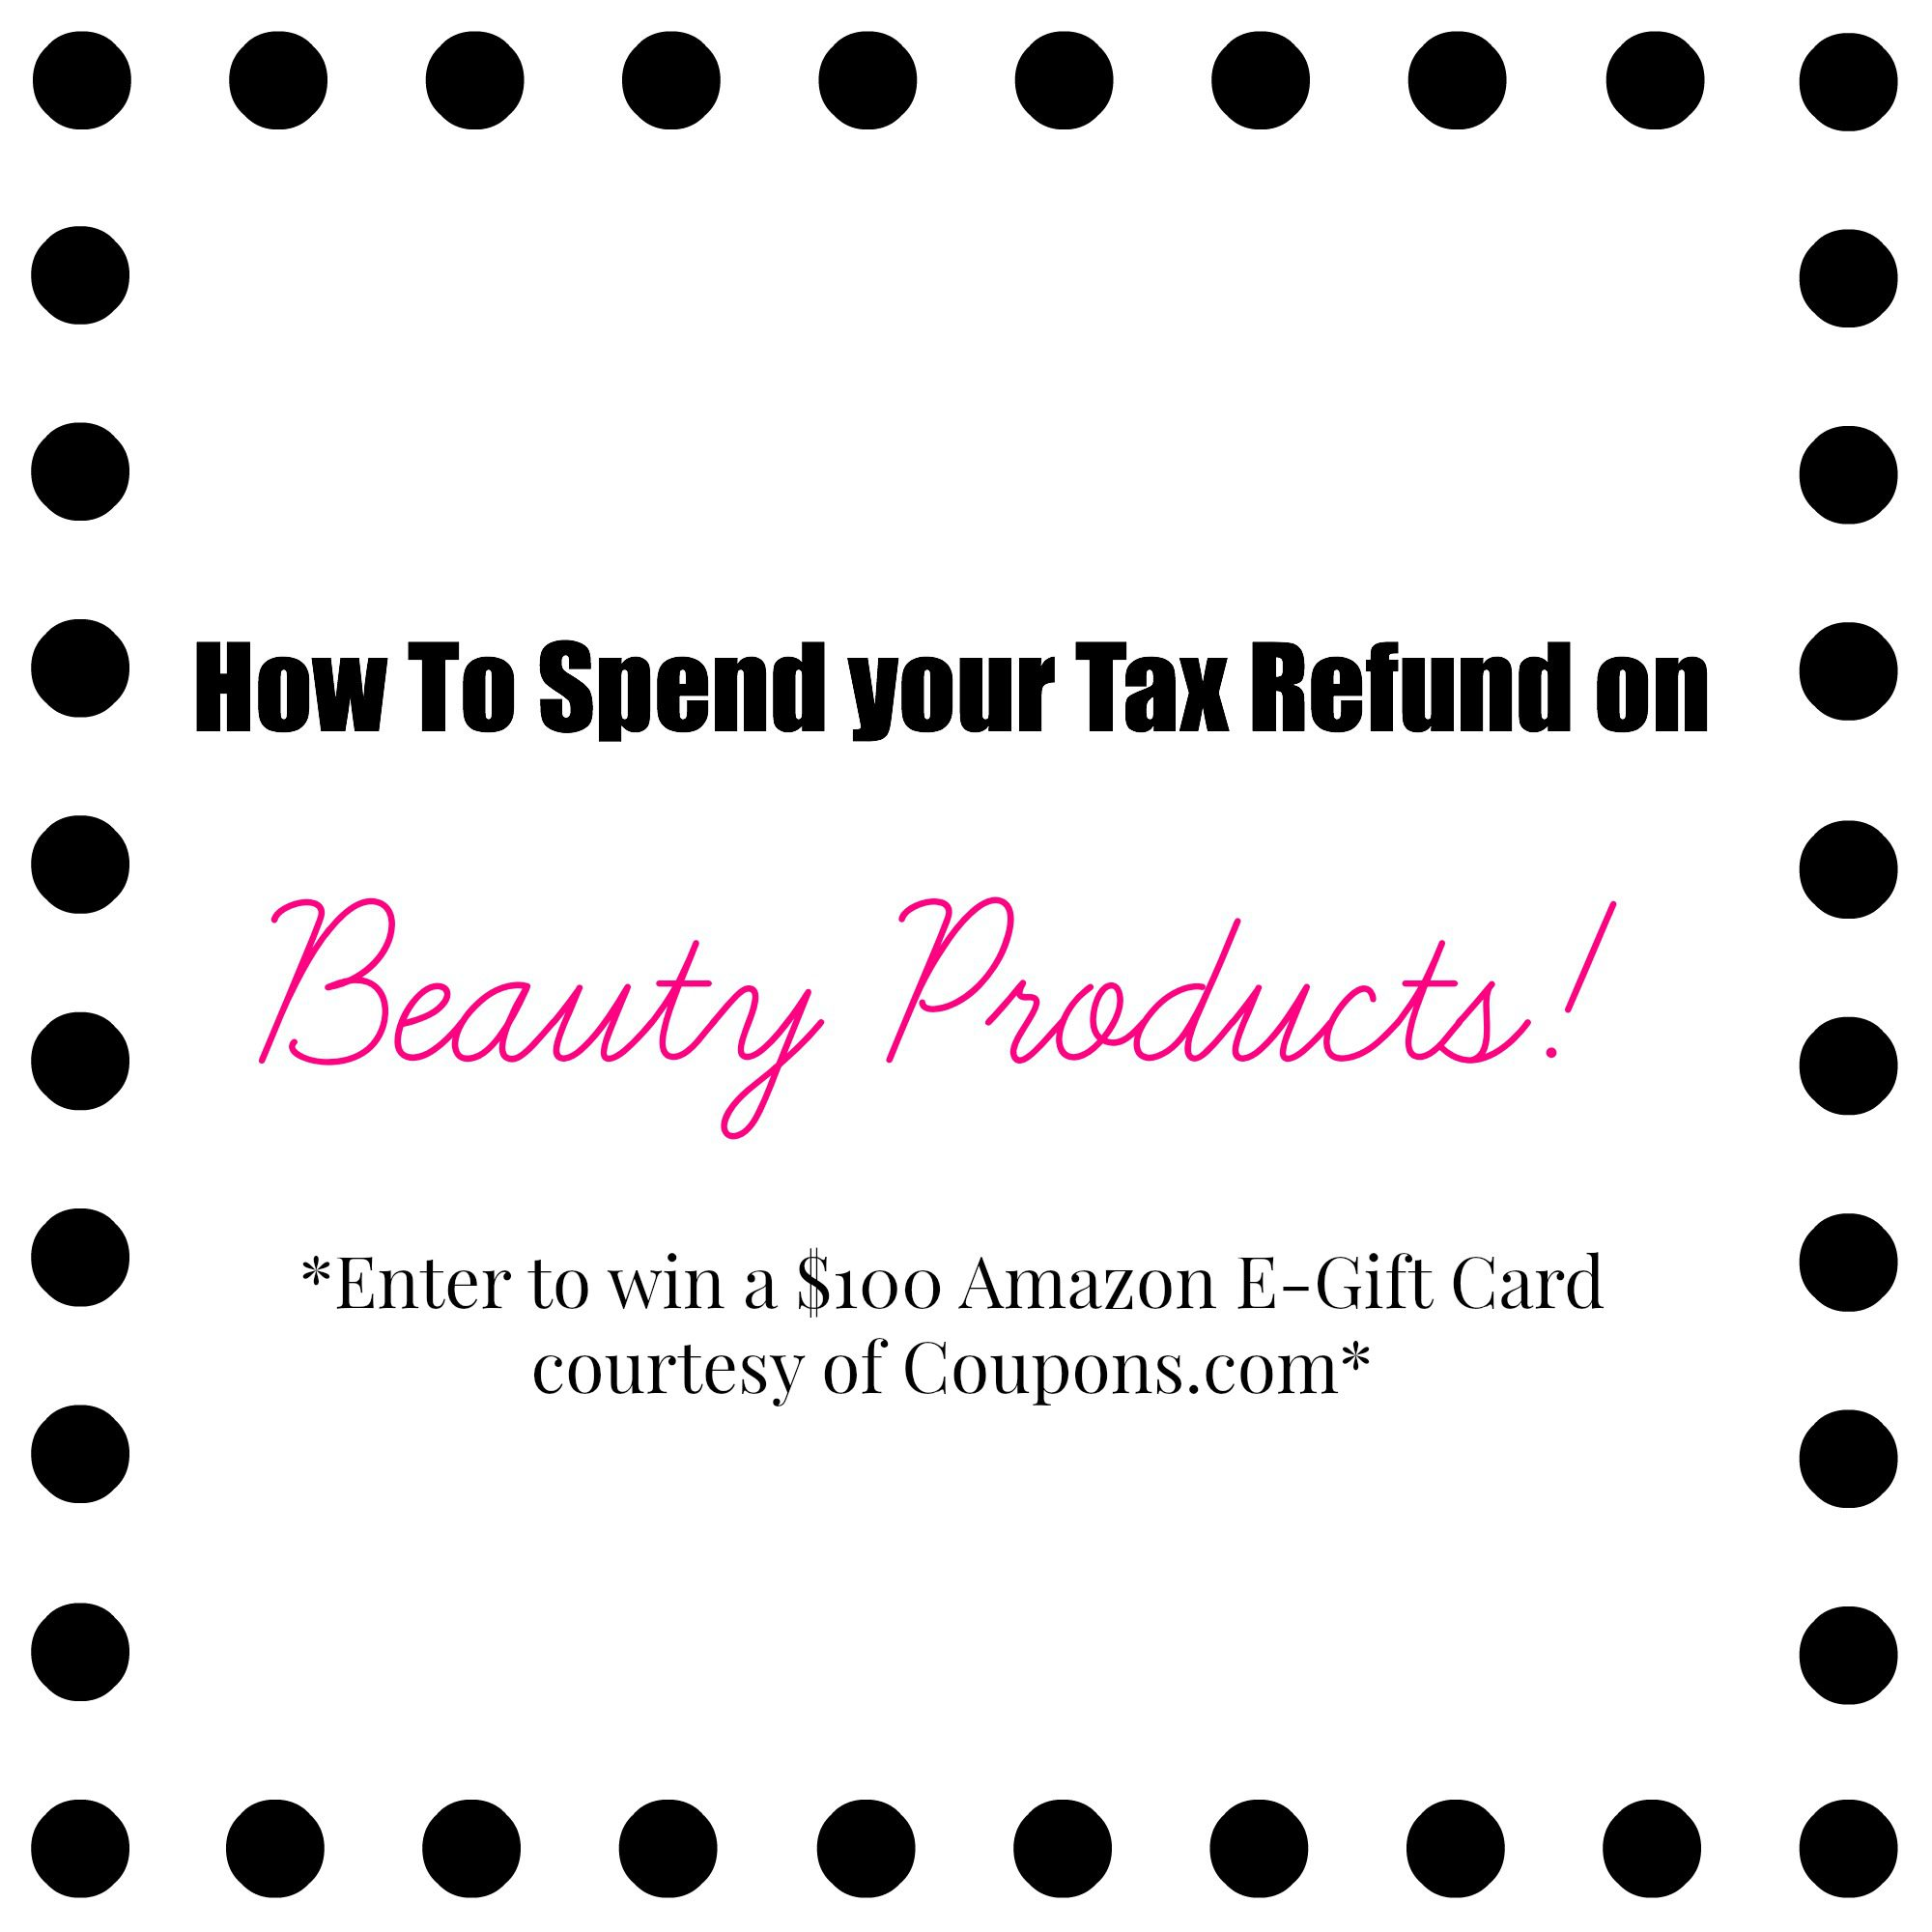 How To Spend Your Tax Refund on Beauty Products + $100 Amazon E-Gift Card Giveaway